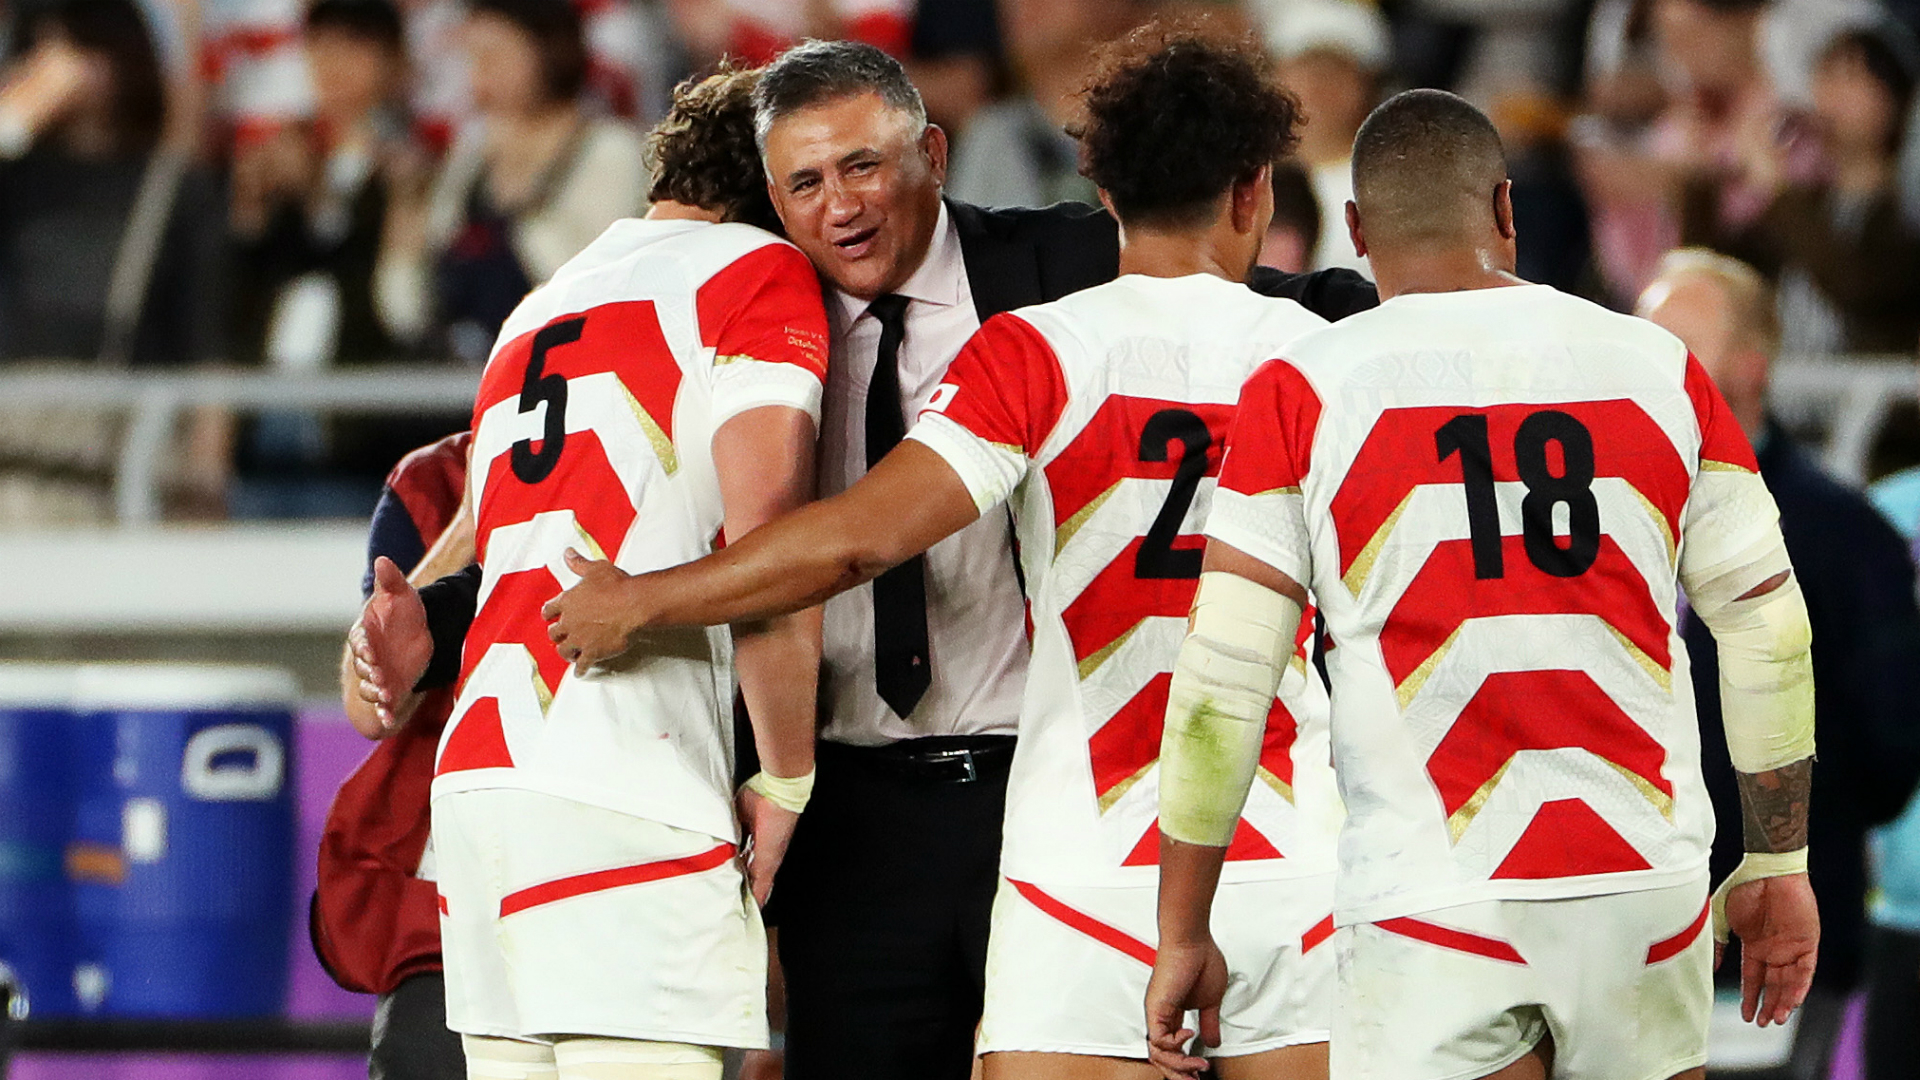 Rugby World Cup 2019: Japan heroes motivated after typhoon disaster